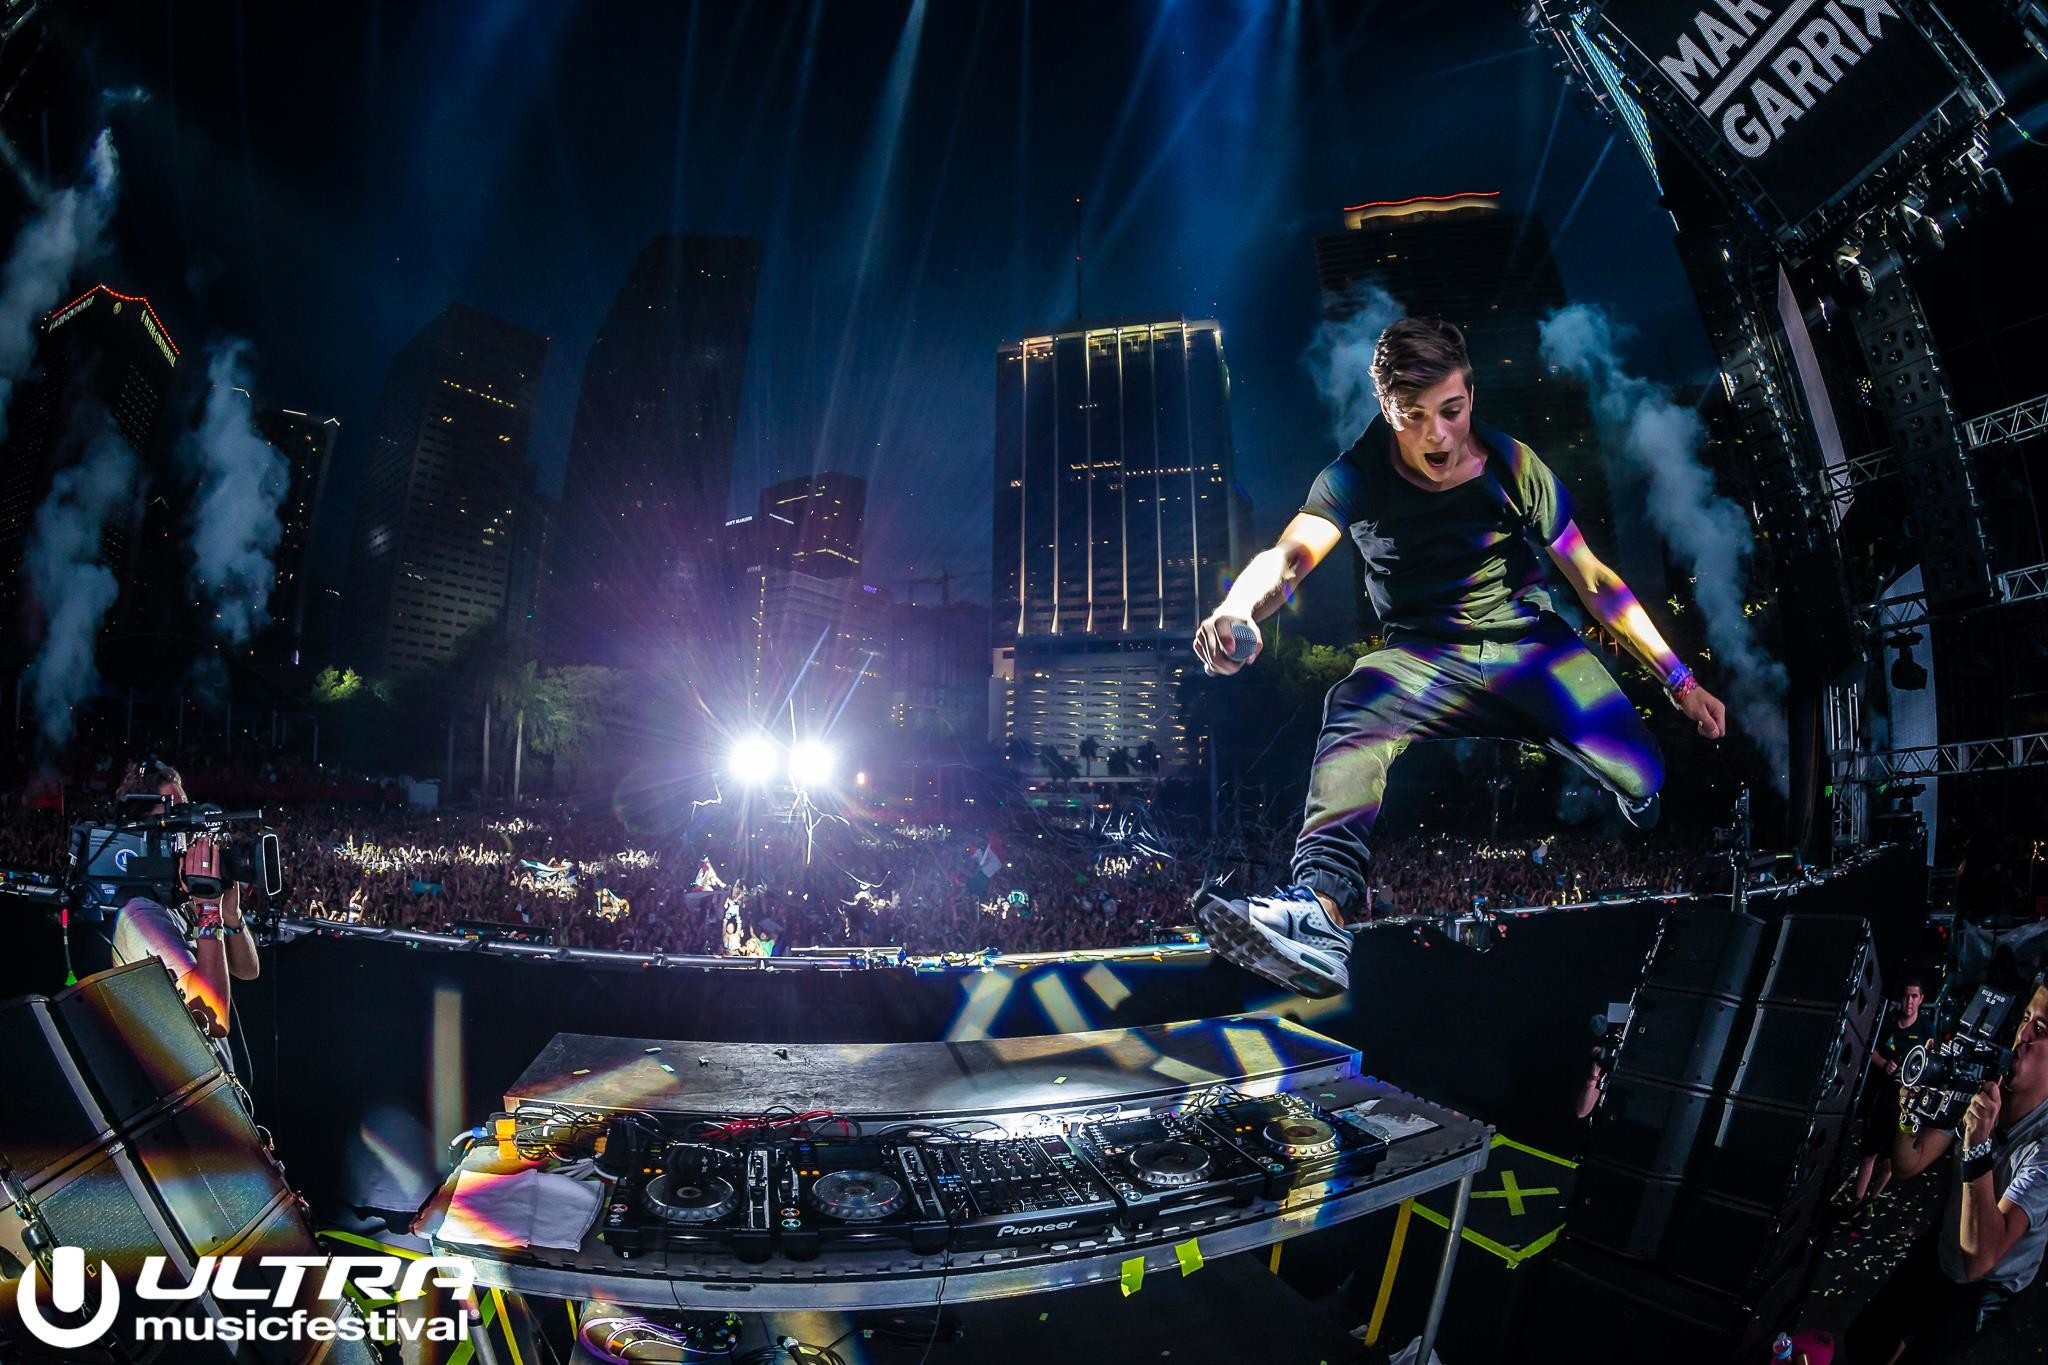 2048x1365 Martin Garrix Reveals Ed Sheeran Collaboration At Ultra Music Festival |  Your EDM